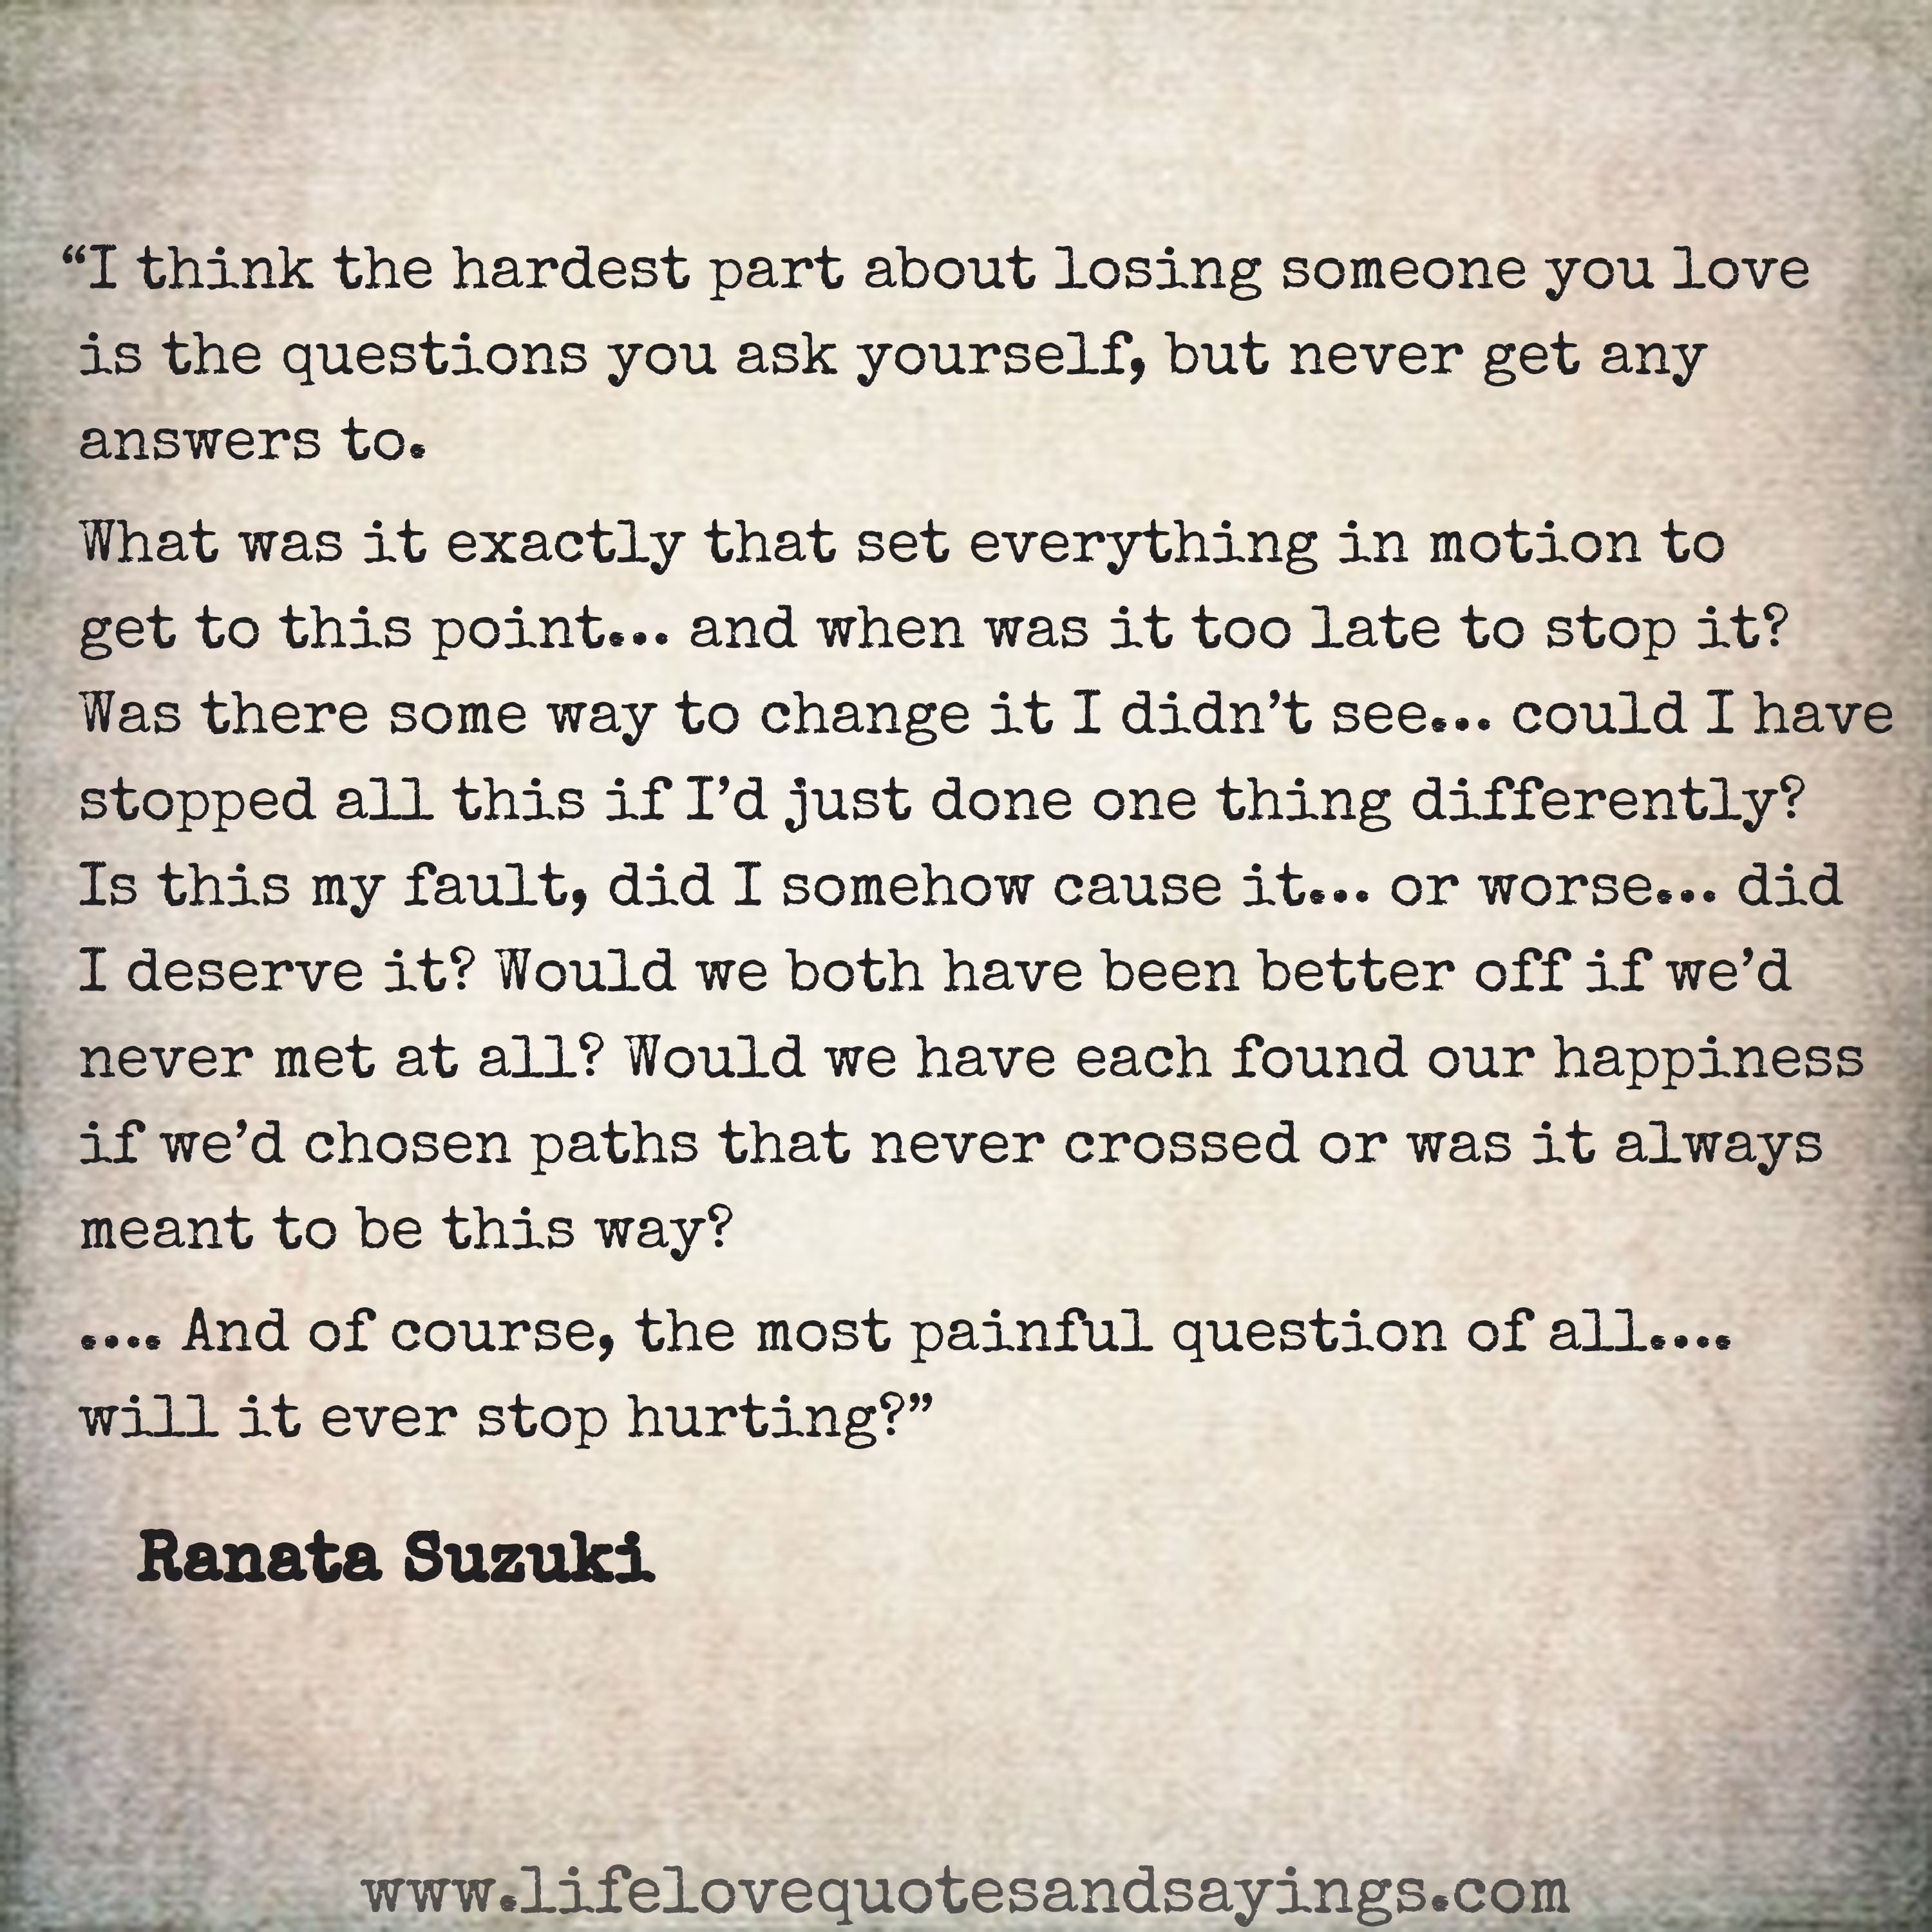 "Ranata Suzuki You saved to Ranata Suzuki Quotes ""I think the hardest part about losing"